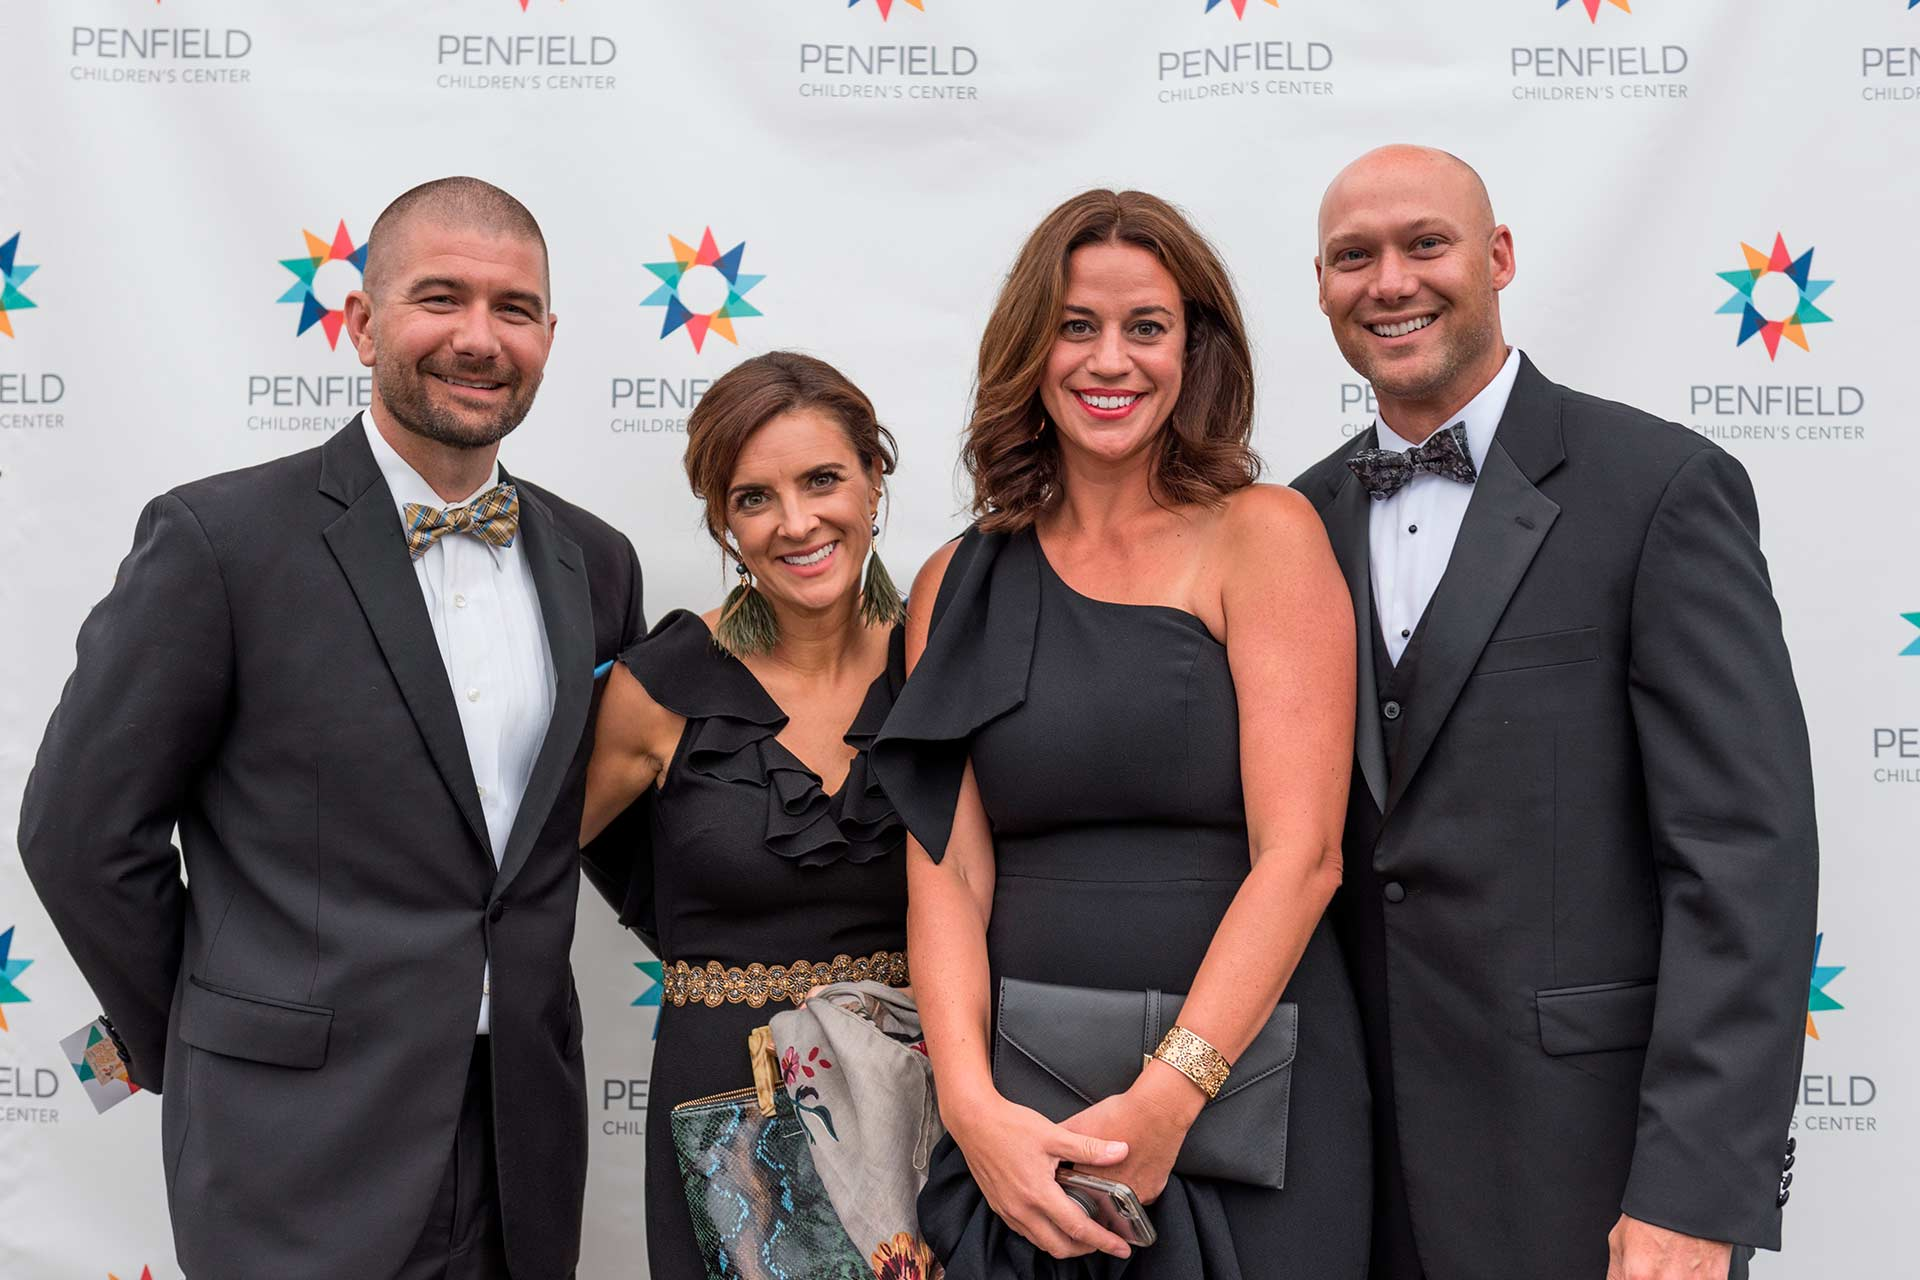 2019 Croquet Ball | Penfield Children's Center